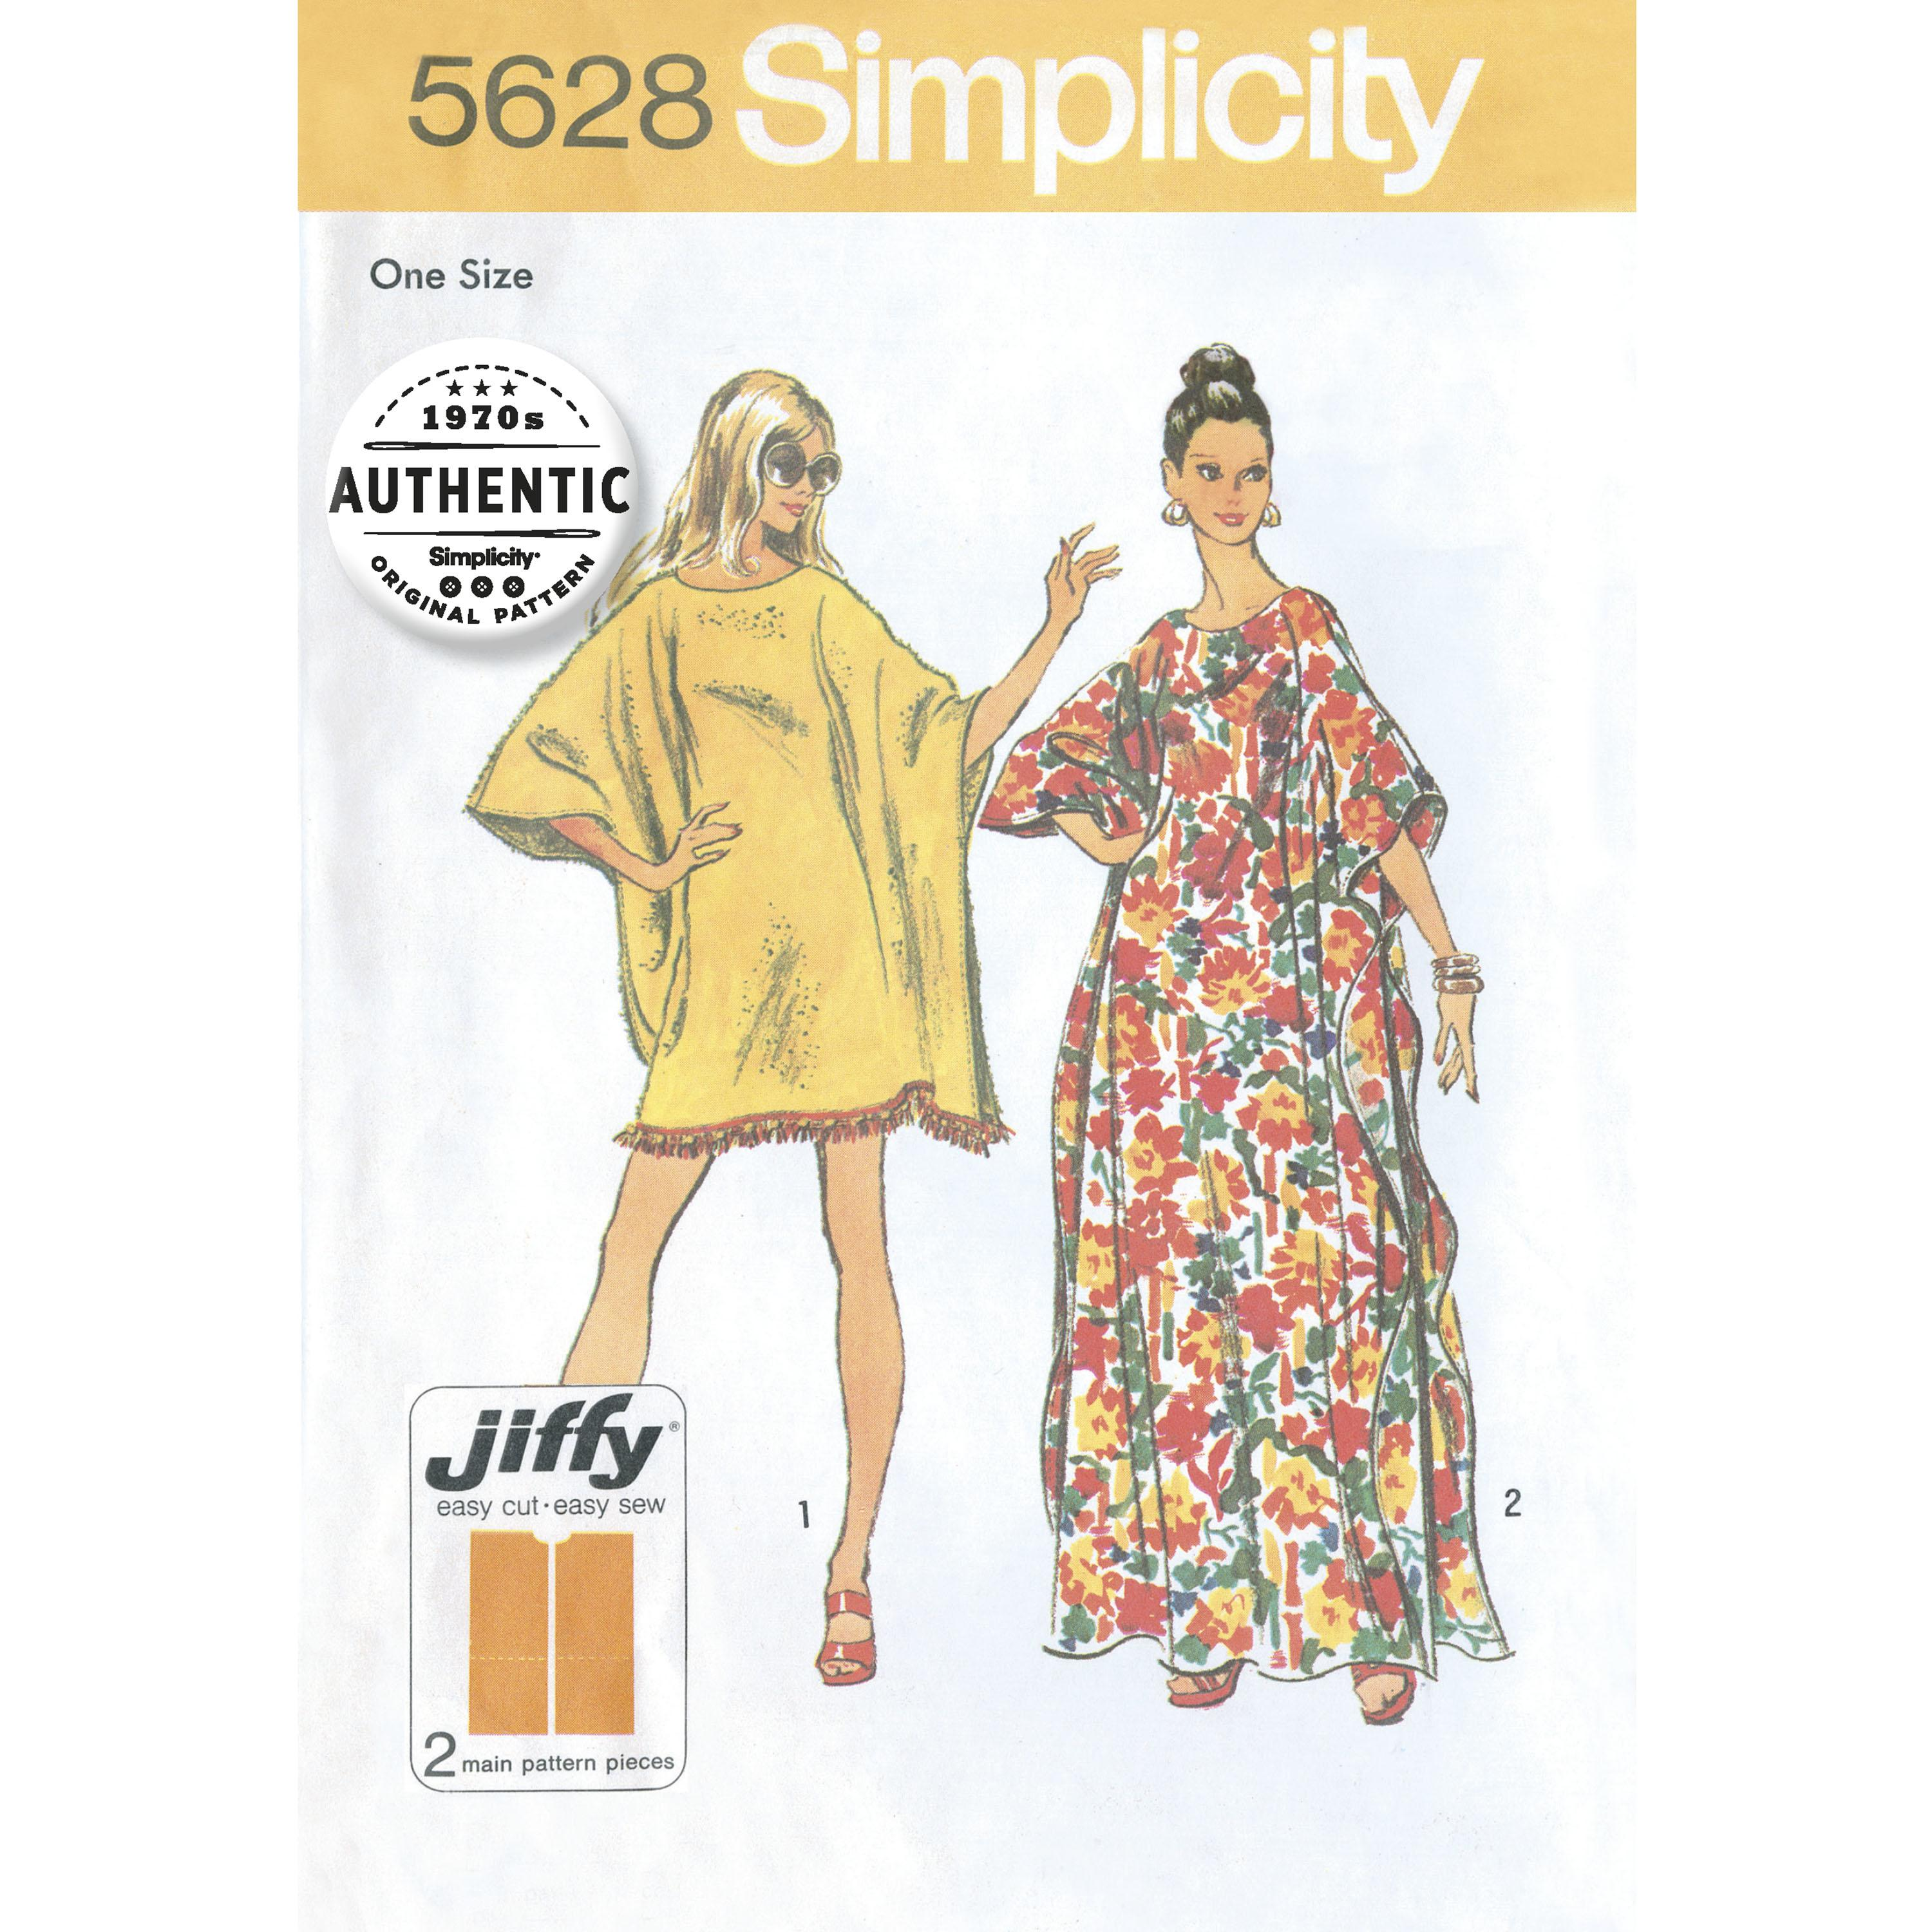 Simplicity S5628 Women's One Size Vintage Jiffy Caftan